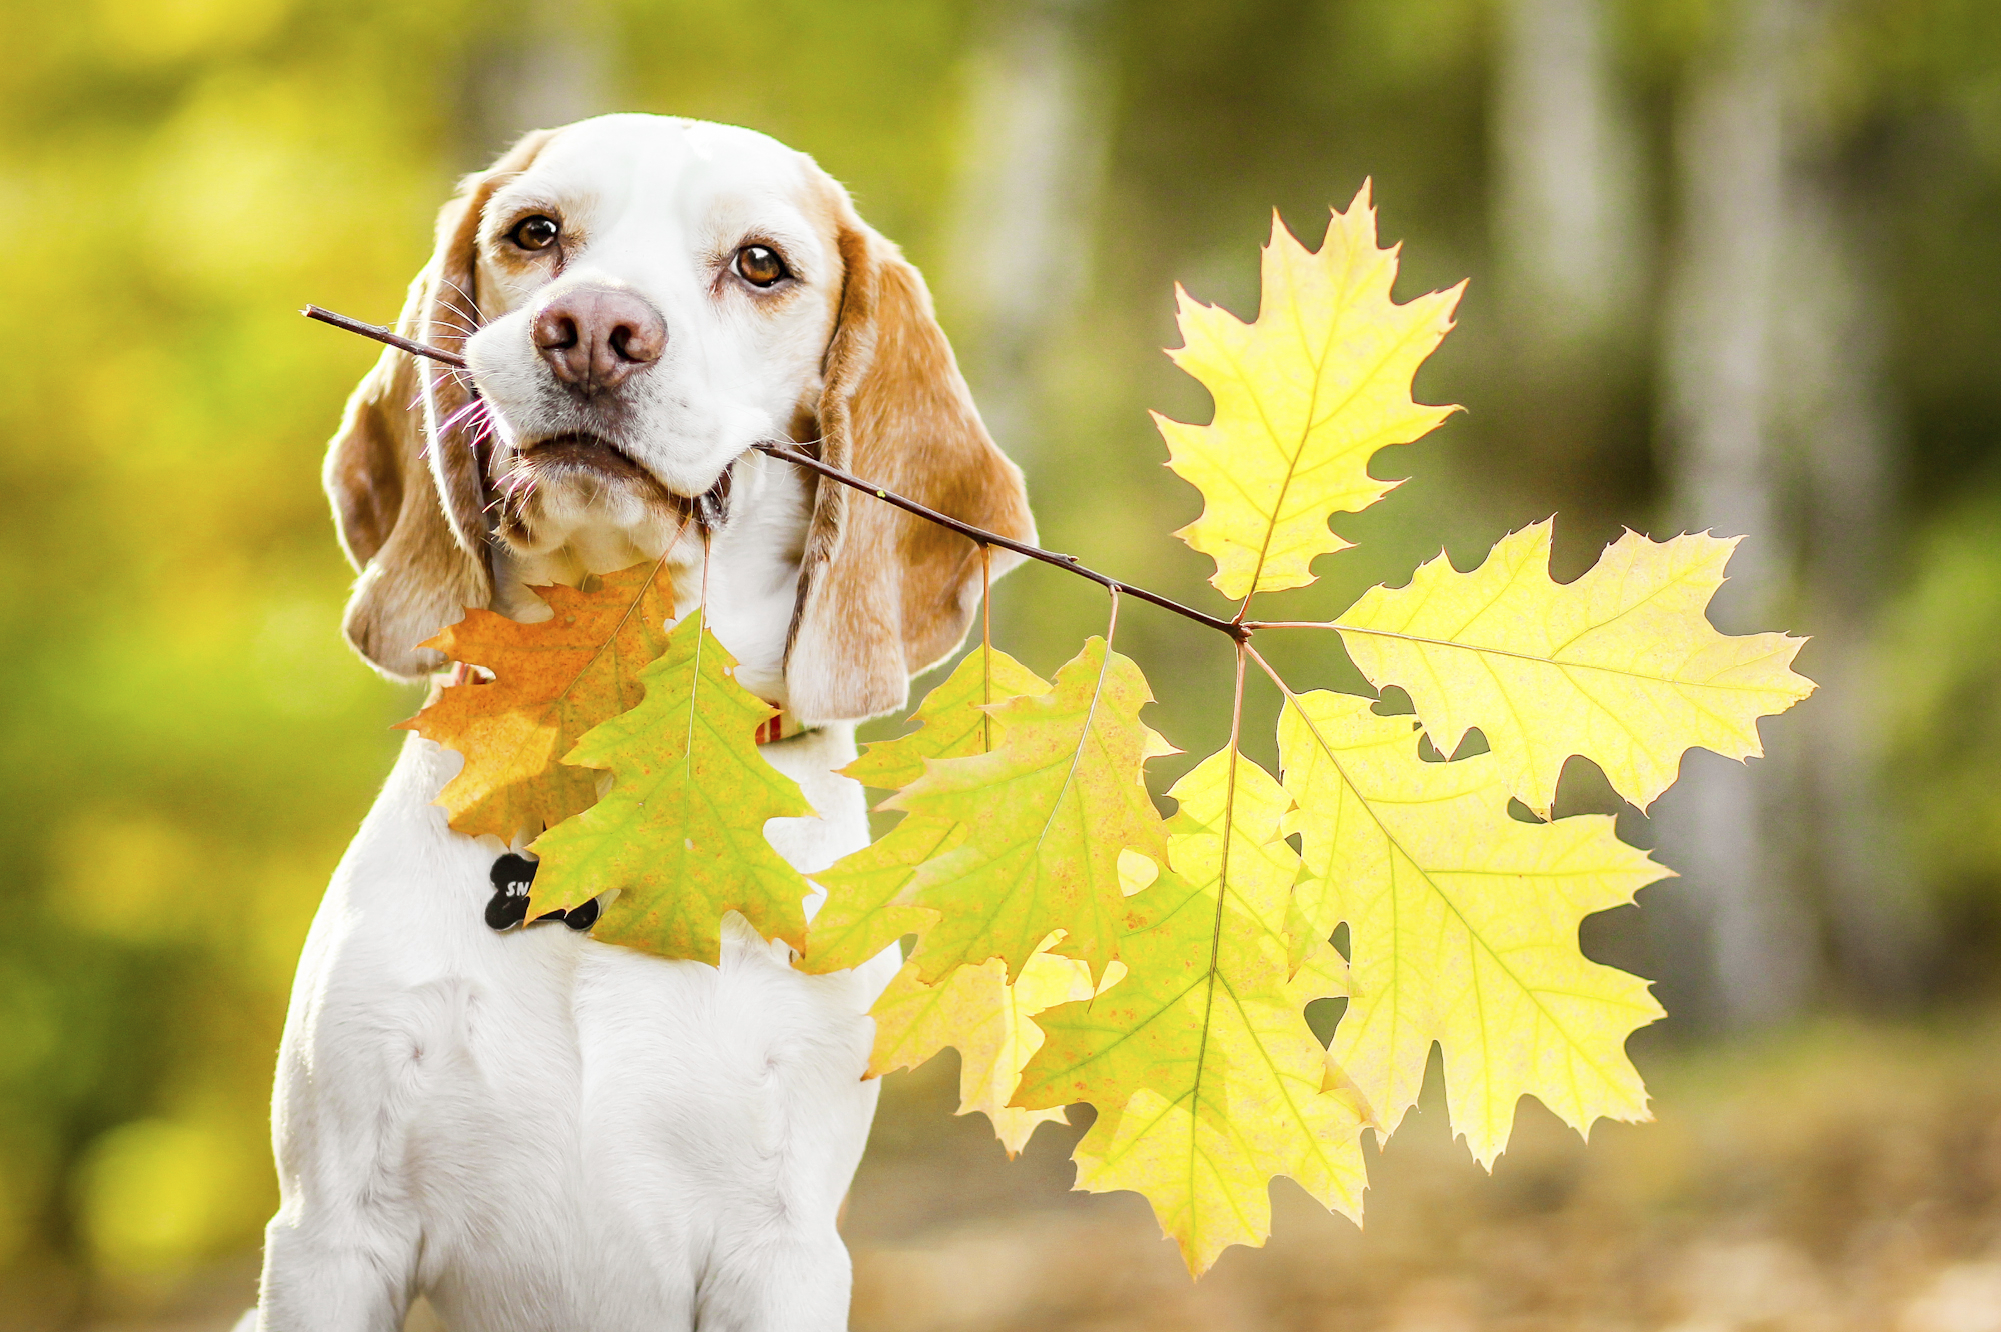 Beagle-dog-with-leaves-in-his-mouth-000032797854_Medium.jpg